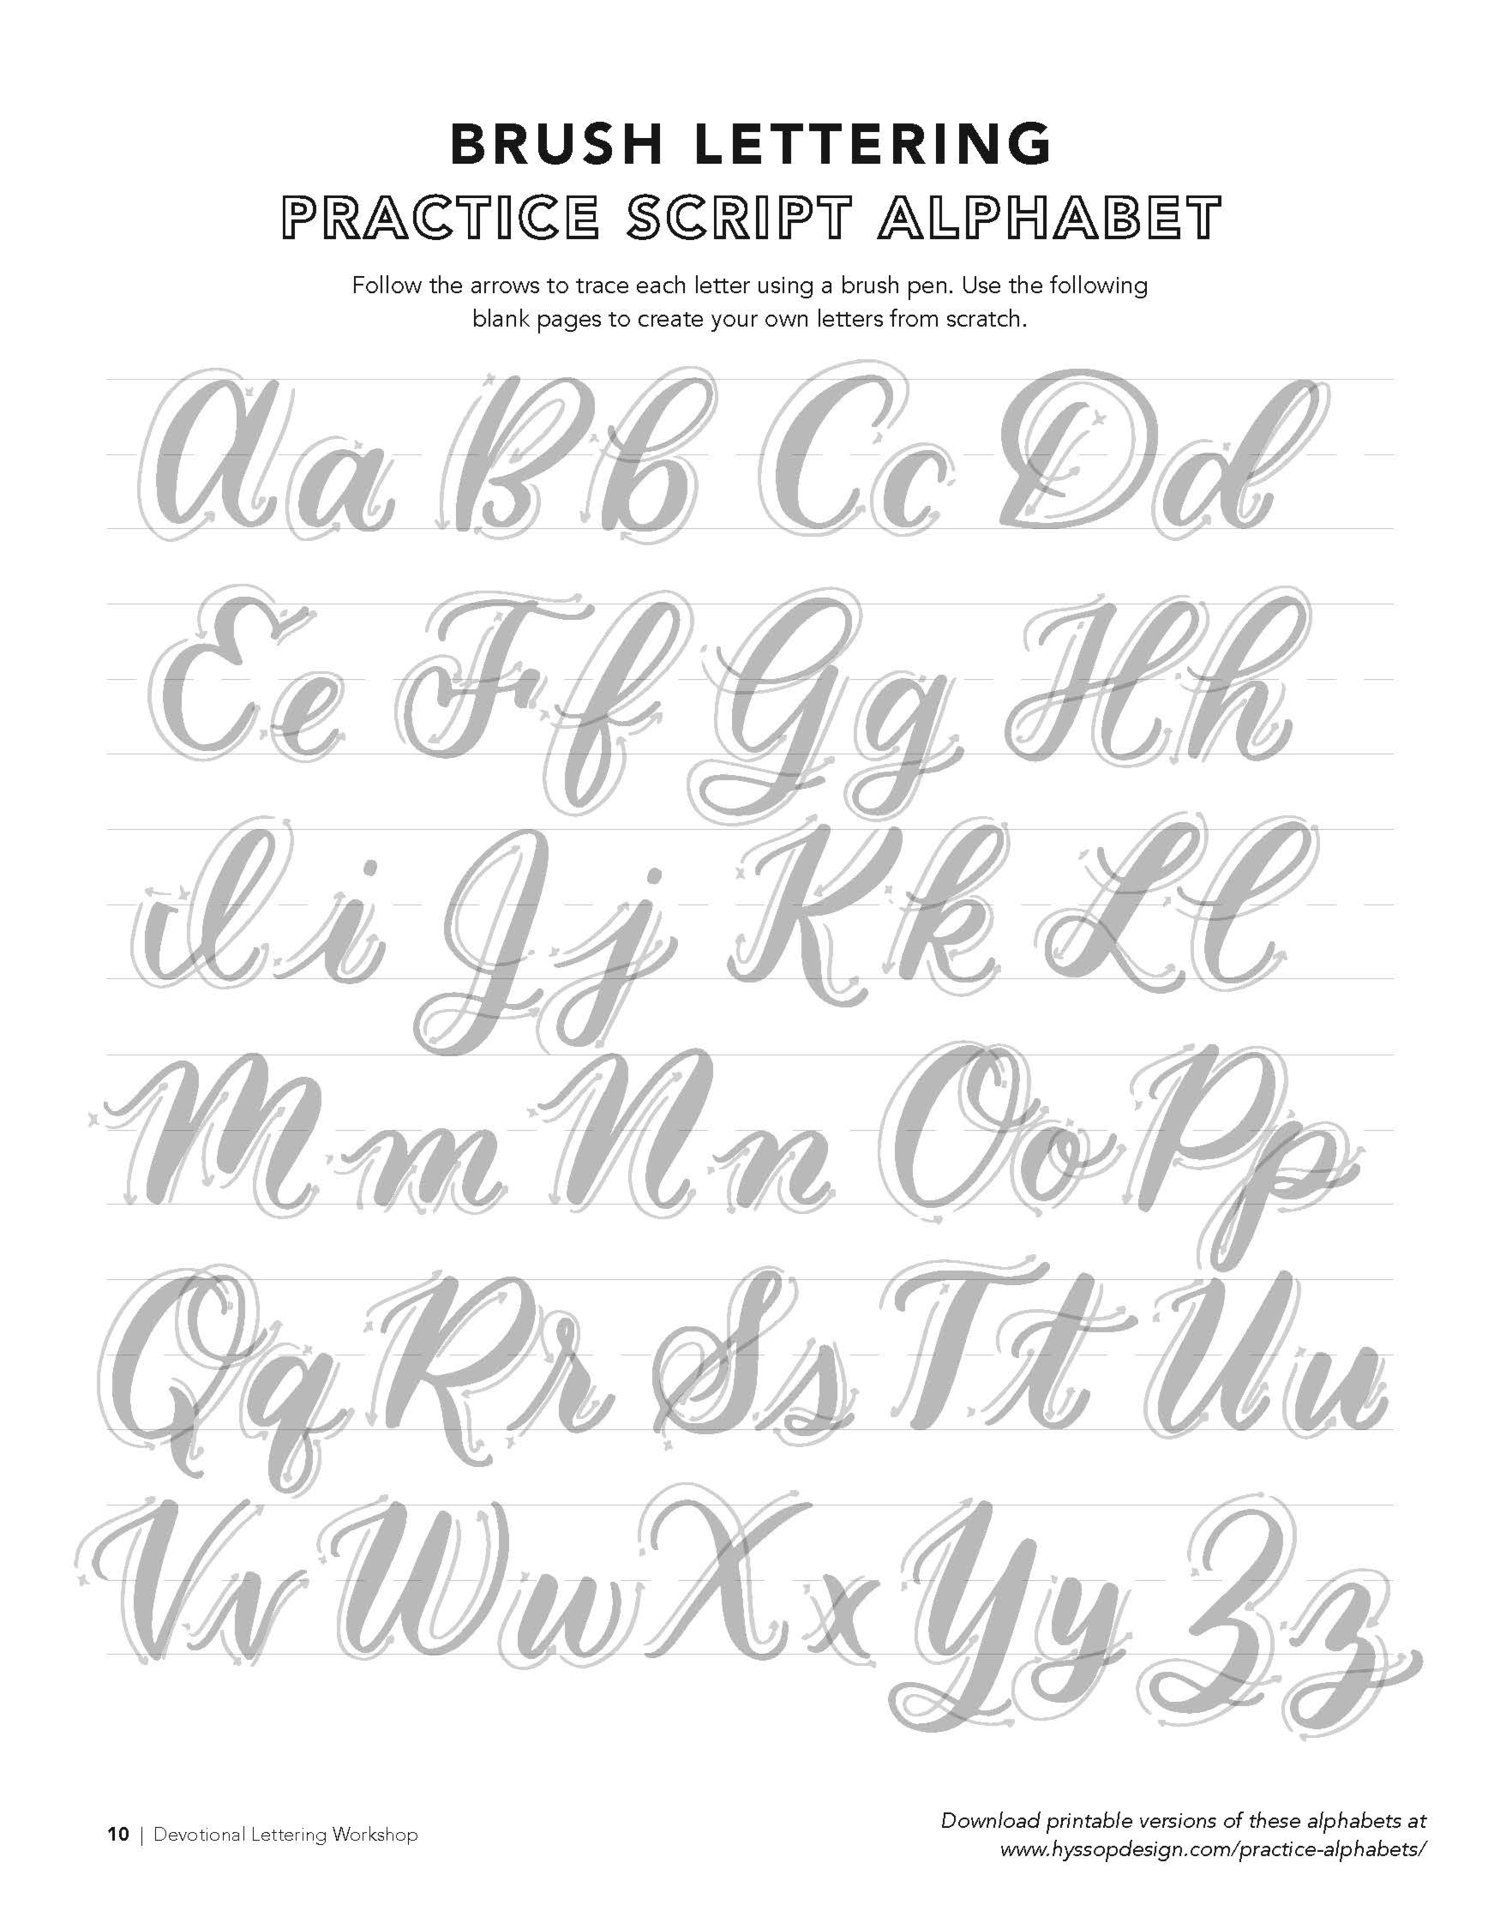 Free Calligraphy Alphabets Calligraphy Free Calligraphy